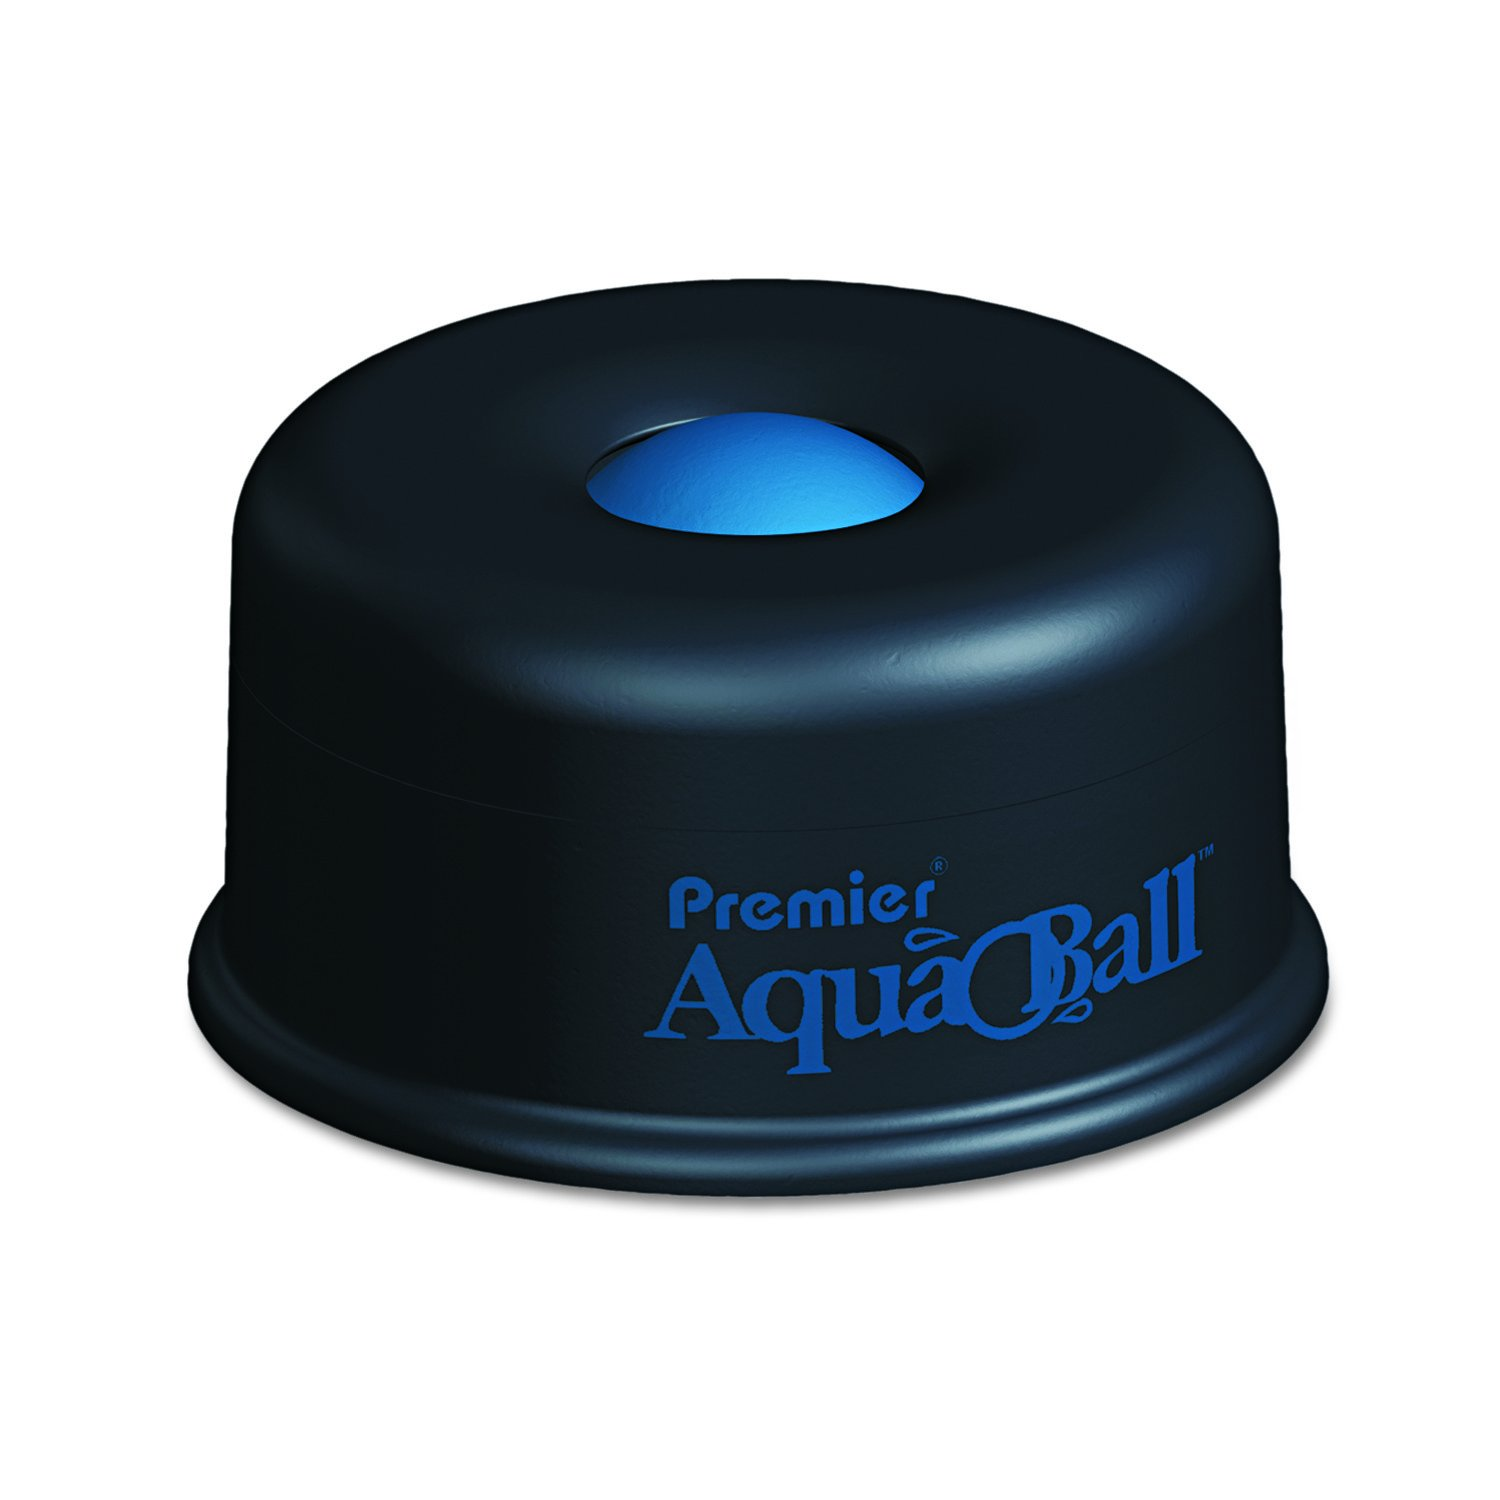 Premier AquaBall All Purpose Moistener, Black/Blue (PREAQ701G)